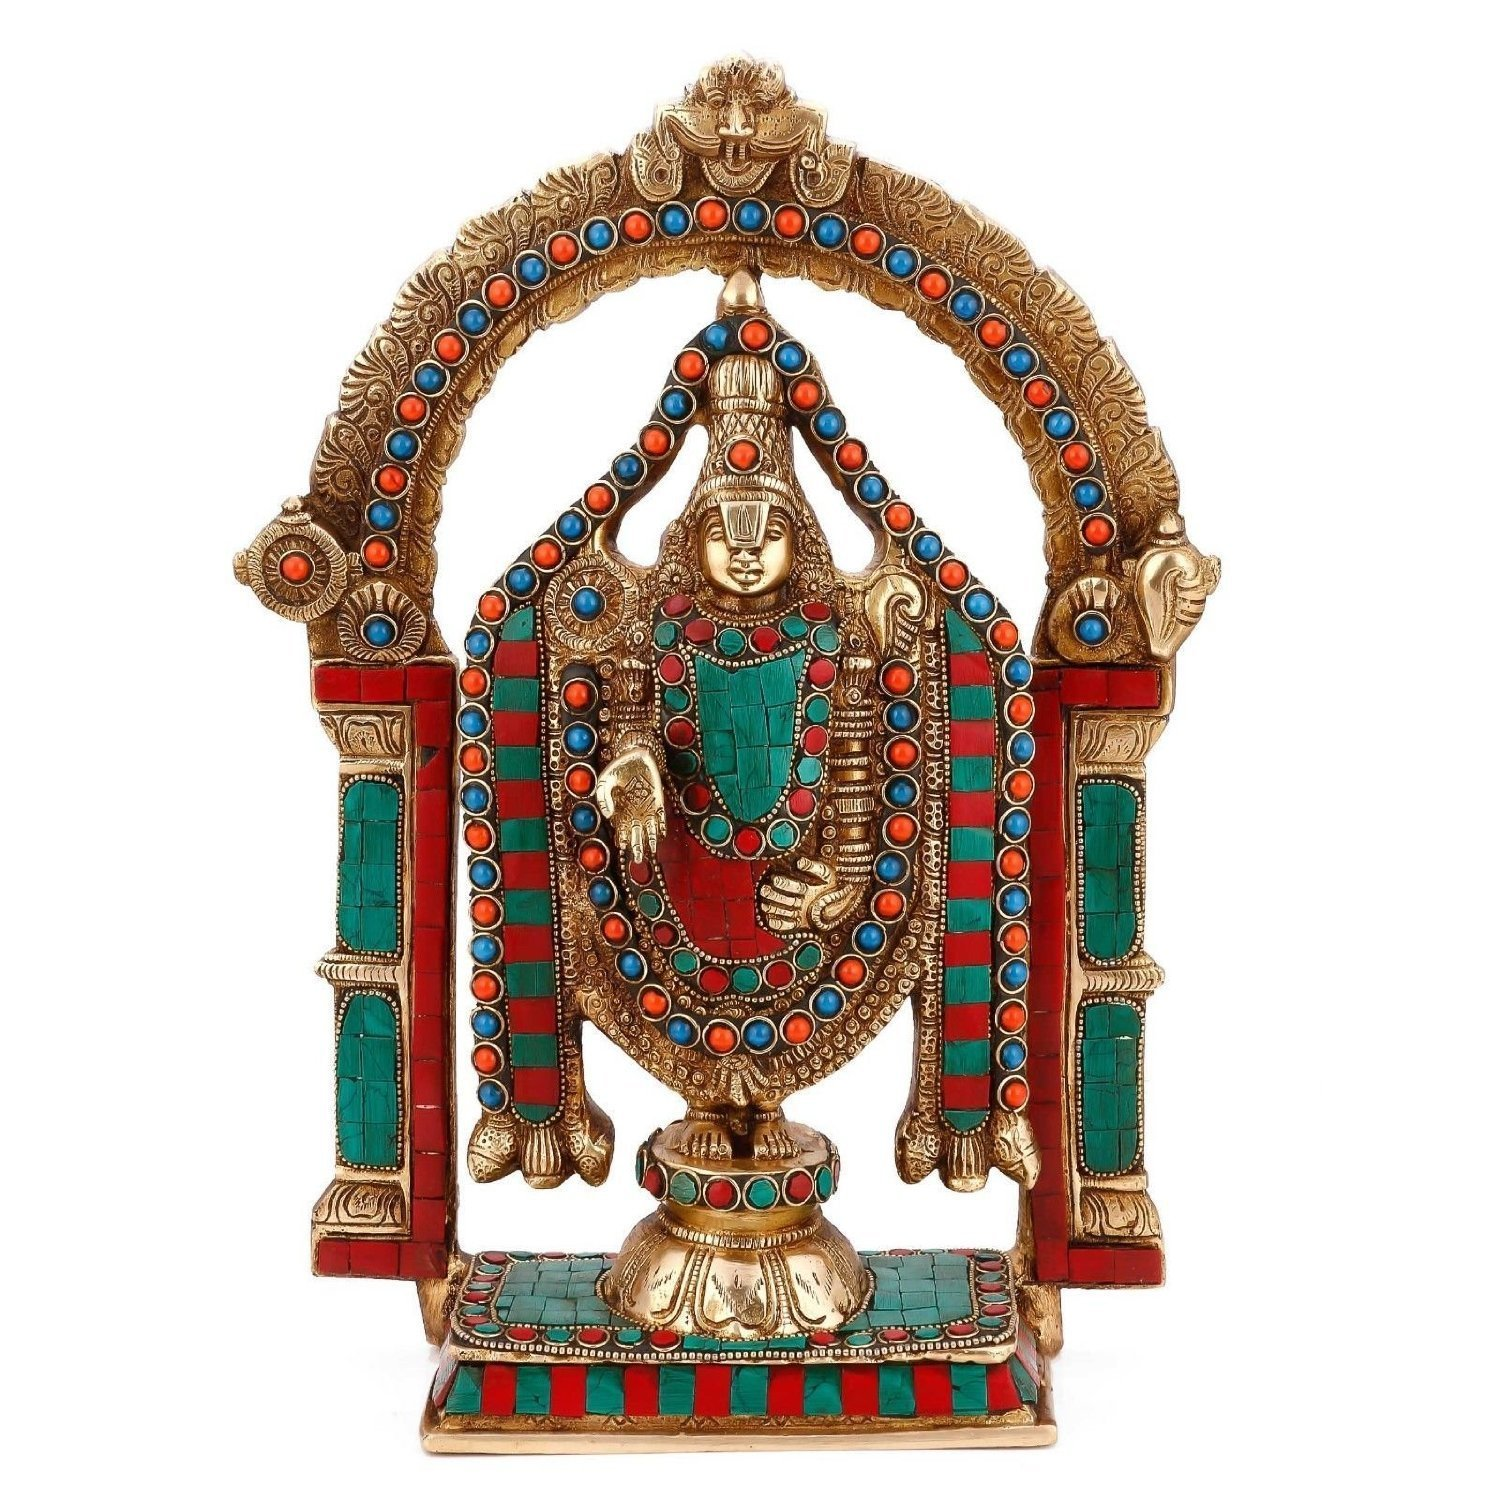 Aone India Lord Venkateswara as Tirupati Balaji Brass Statue + Cash Envelope (Pack Of 10)